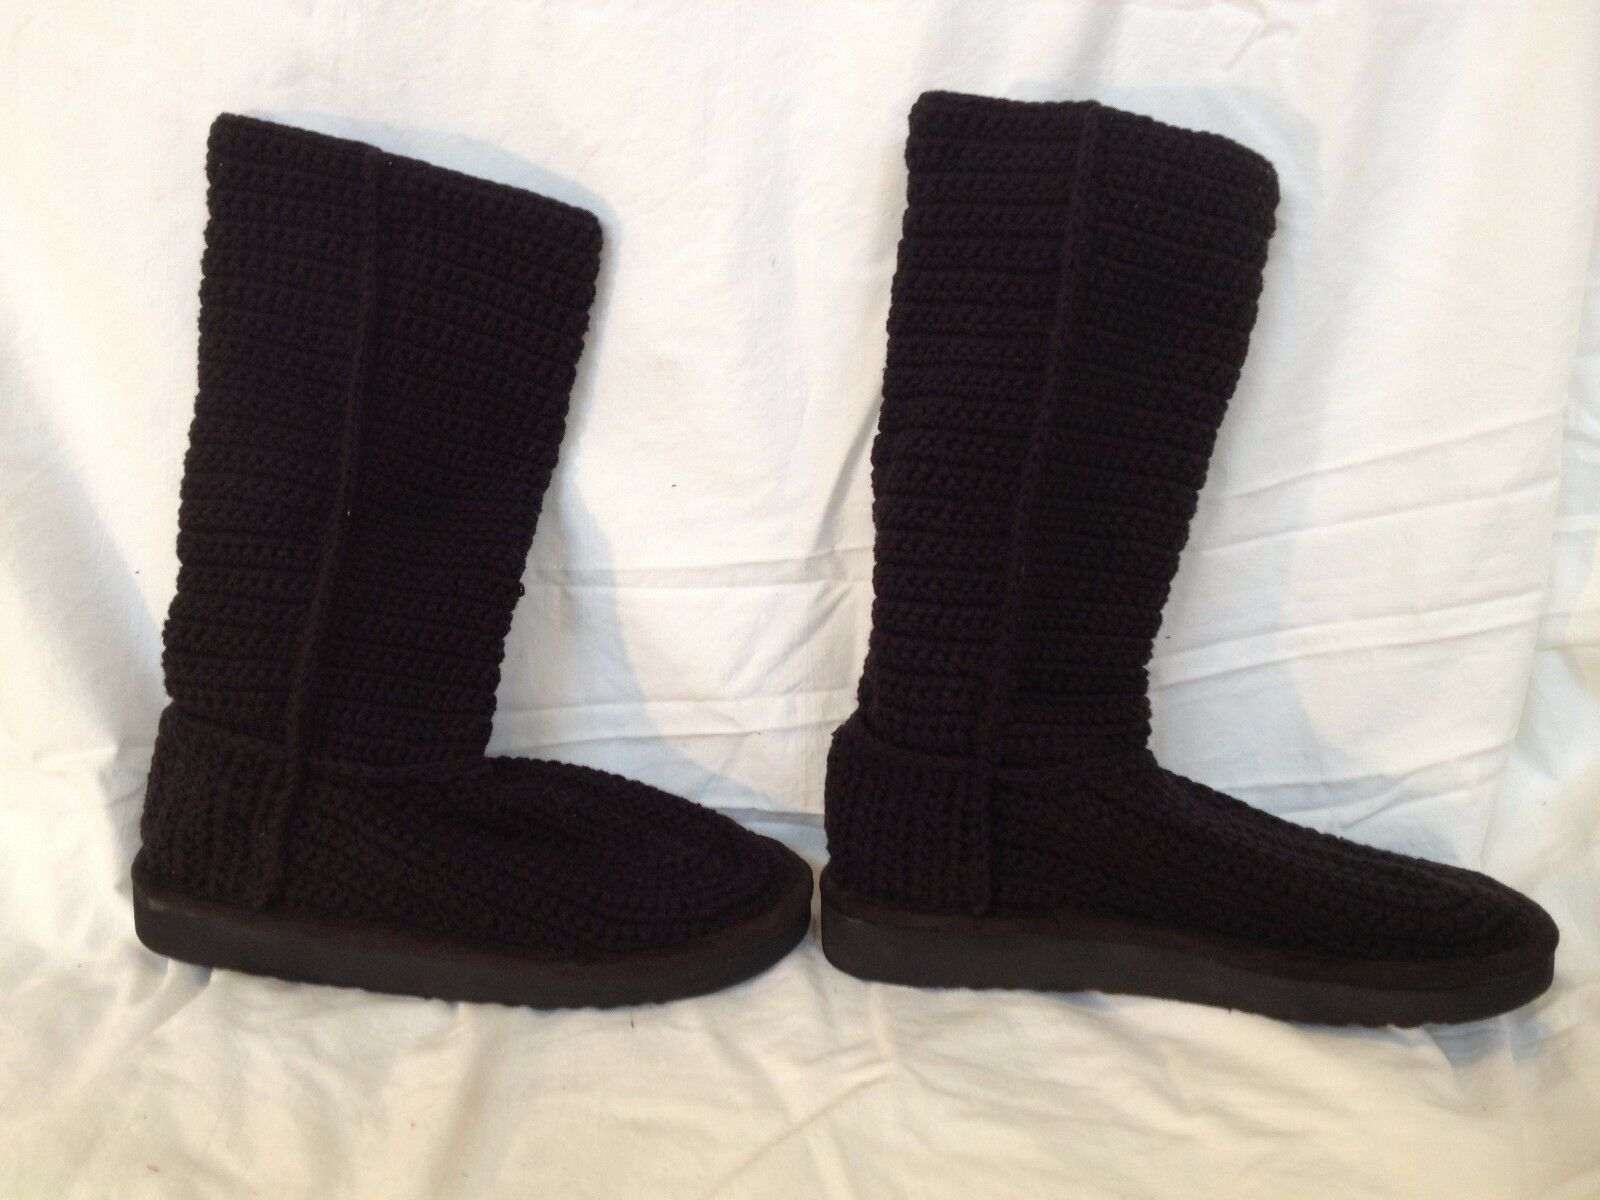 NEW LIVS Crochet Boots - Knit - Shorter - Various Sizes -7 Colors CLEARANCE